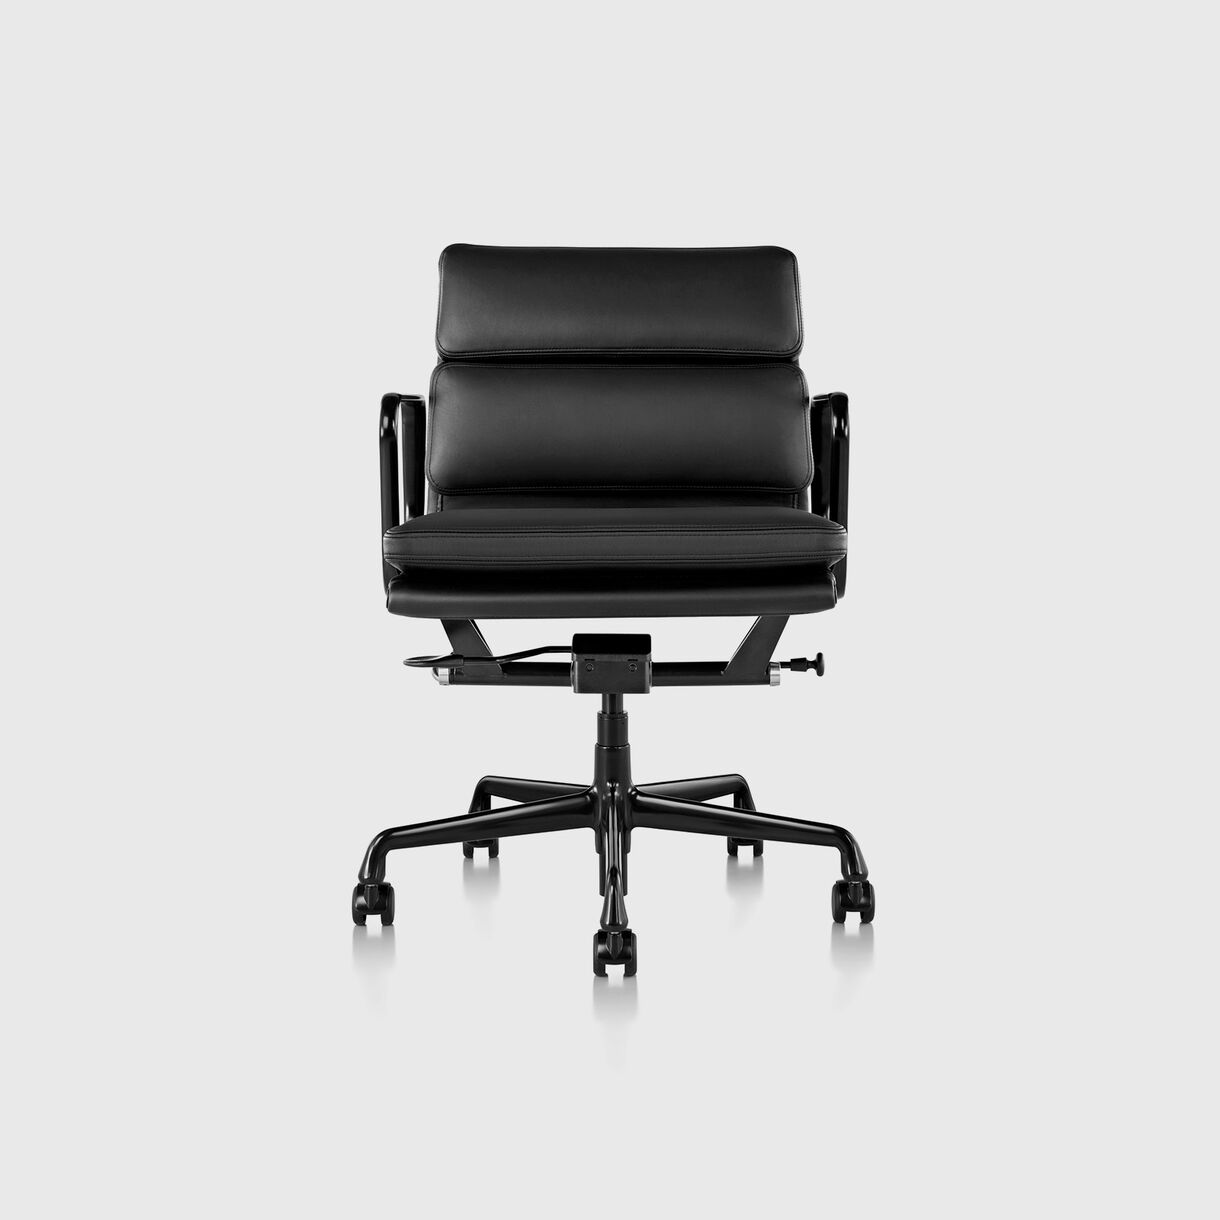 Eames Soft Pad Management Chair, Pneumatic, Black Frame & Black Leather